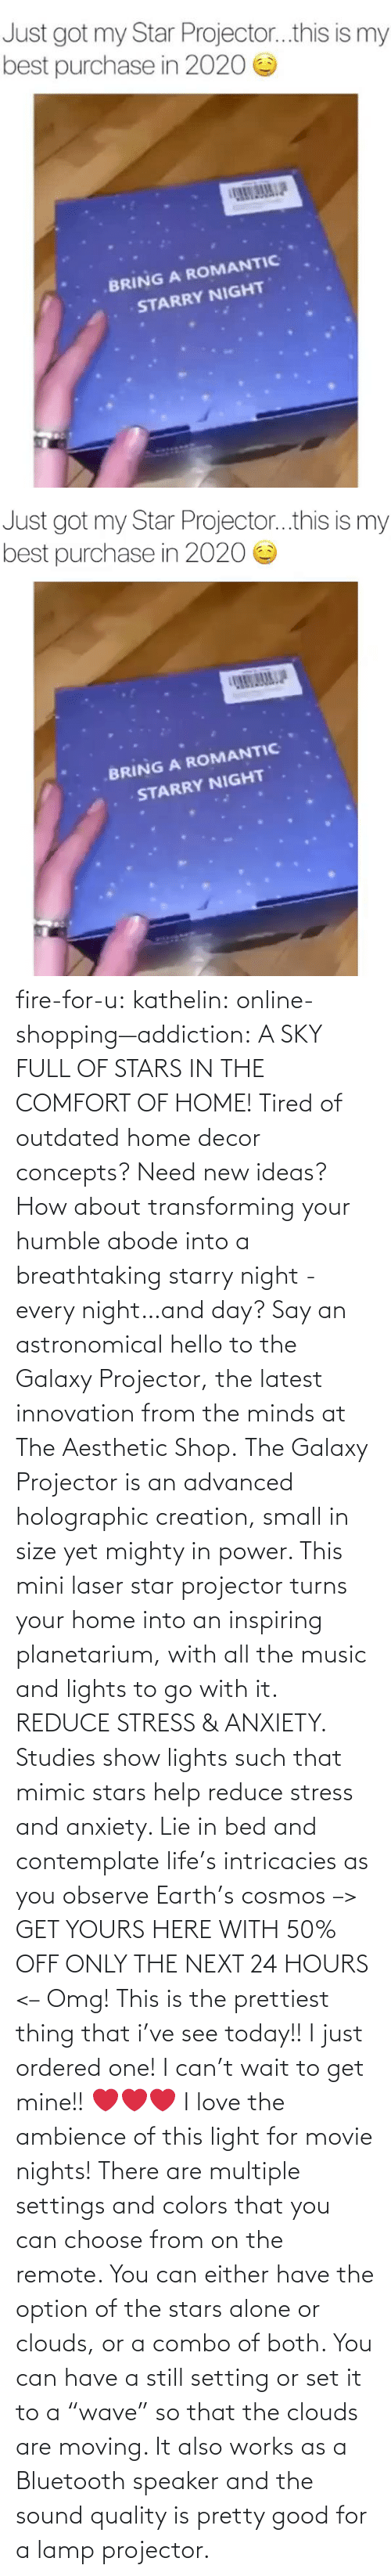 "Hello: fire-for-u:  kathelin: online-shopping—addiction:  A SKY FULL OF STARS IN THE COMFORT OF HOME! Tired of outdated home decor concepts? Need new ideas? How about transforming your humble abode into a breathtaking starry night - every night…and day? Say an astronomical hello to the Galaxy Projector, the latest innovation from the minds at The Aesthetic Shop. The Galaxy Projector is an advanced holographic creation, small in size yet mighty in power. This mini laser star projector turns your home into an inspiring planetarium, with all the music and lights to go with it. REDUCE STRESS & ANXIETY. Studies show lights such that mimic stars help reduce stress and anxiety. Lie in bed and contemplate life's intricacies as you observe Earth's cosmos  –> GET YOURS HERE WITH 50% OFF ONLY THE NEXT 24 HOURS <–   Omg! This is the prettiest thing that i've see today!! I just ordered one! I can't wait to get mine!! ❤️️❤️️❤️️  I love the ambience of this light for movie nights! There are multiple settings and colors that you can choose from on the remote. You can either have the option of the stars alone or clouds, or a combo of both. You can have a still setting or set it to a ""wave"" so that the clouds are moving. It also works as a Bluetooth speaker and the sound quality is pretty good for a lamp projector."